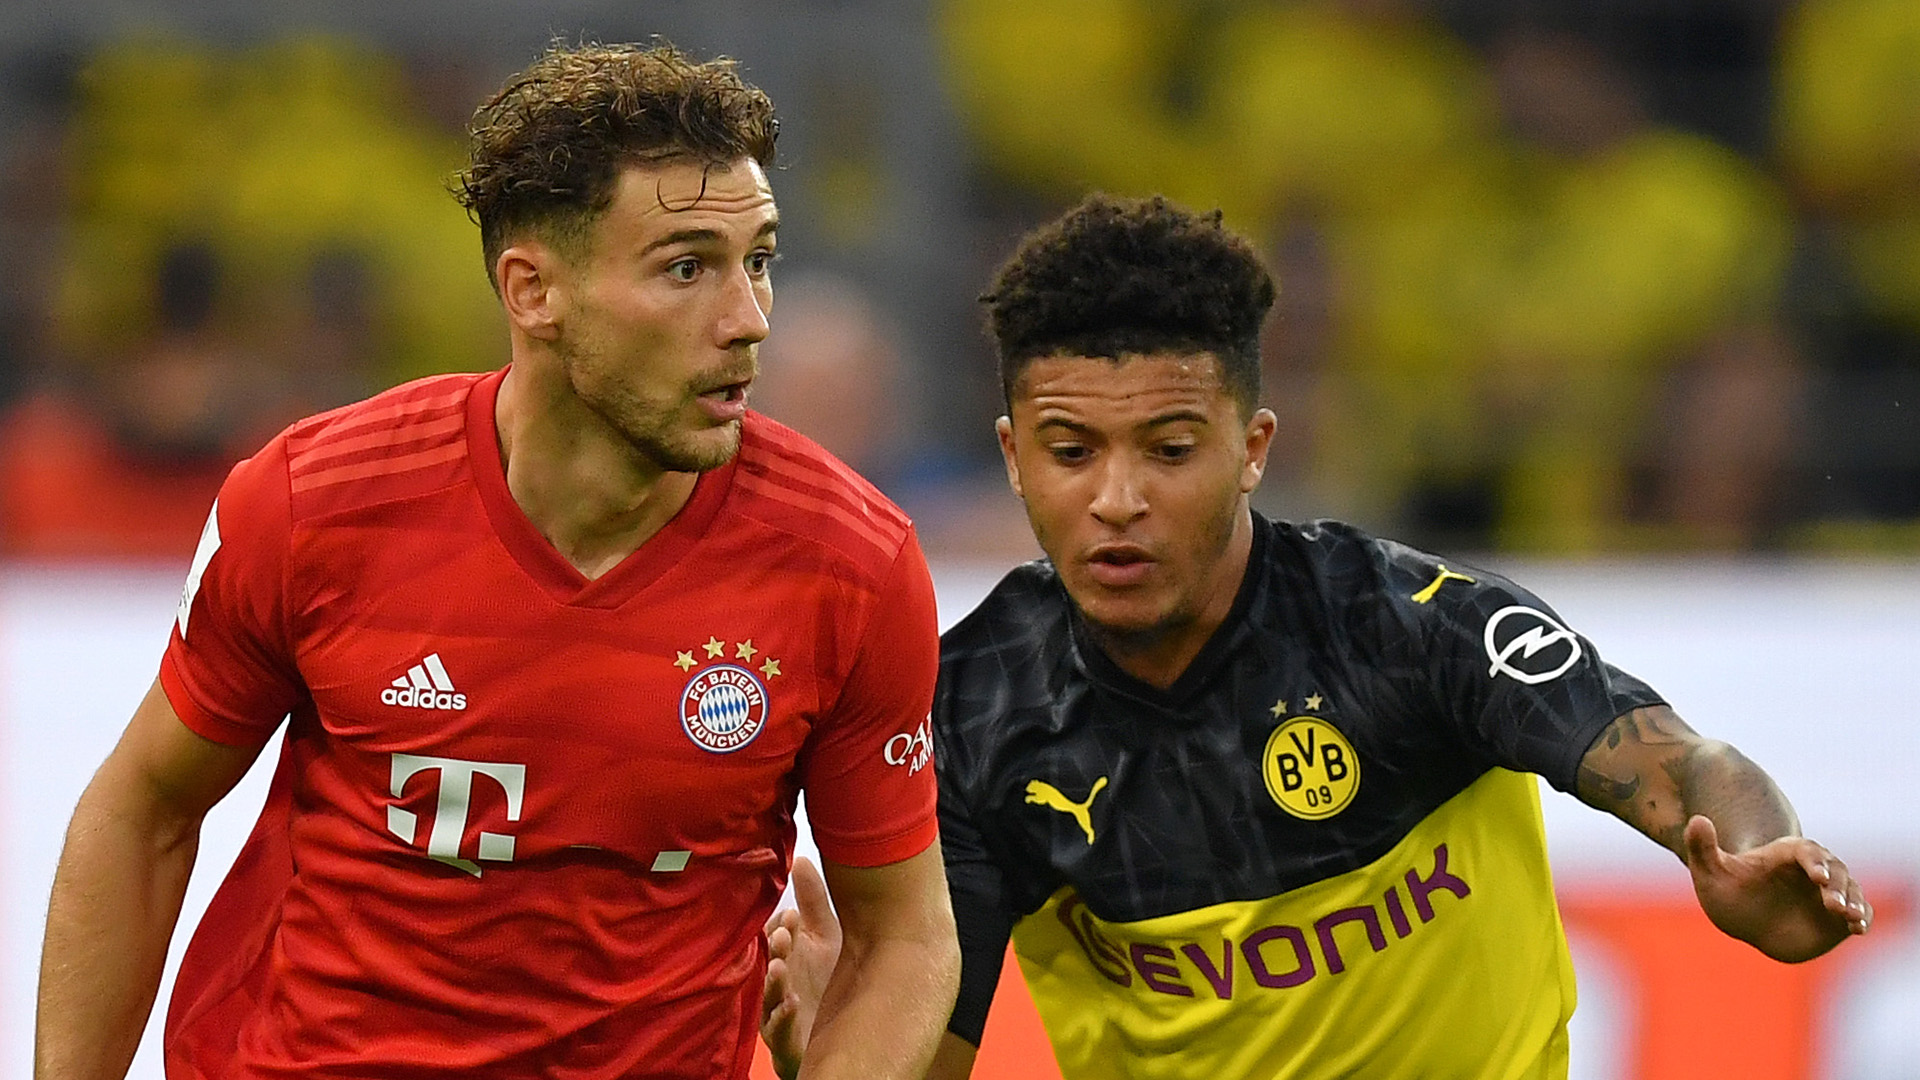 Borussia dortmund vs bayern munich betting preview betting assistant ibook download for mac